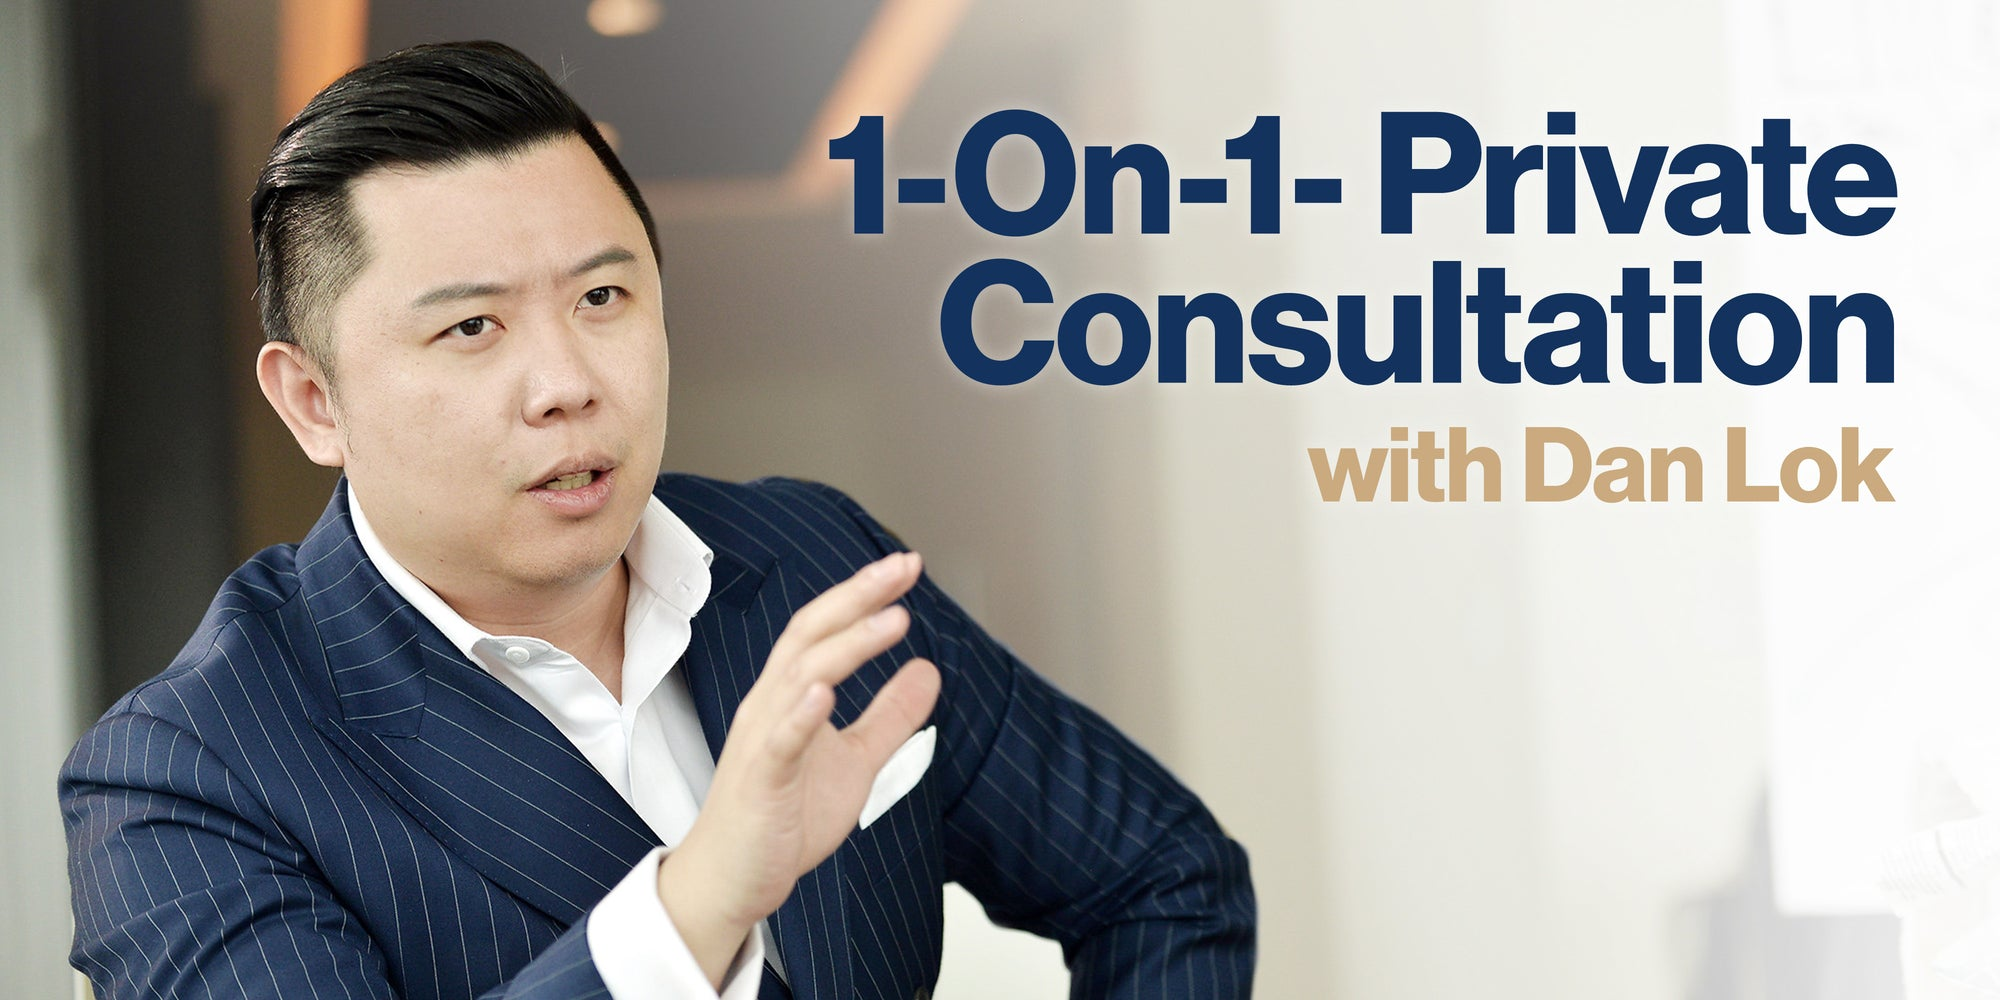 1-On-1- Private Consultation With Dan Lok